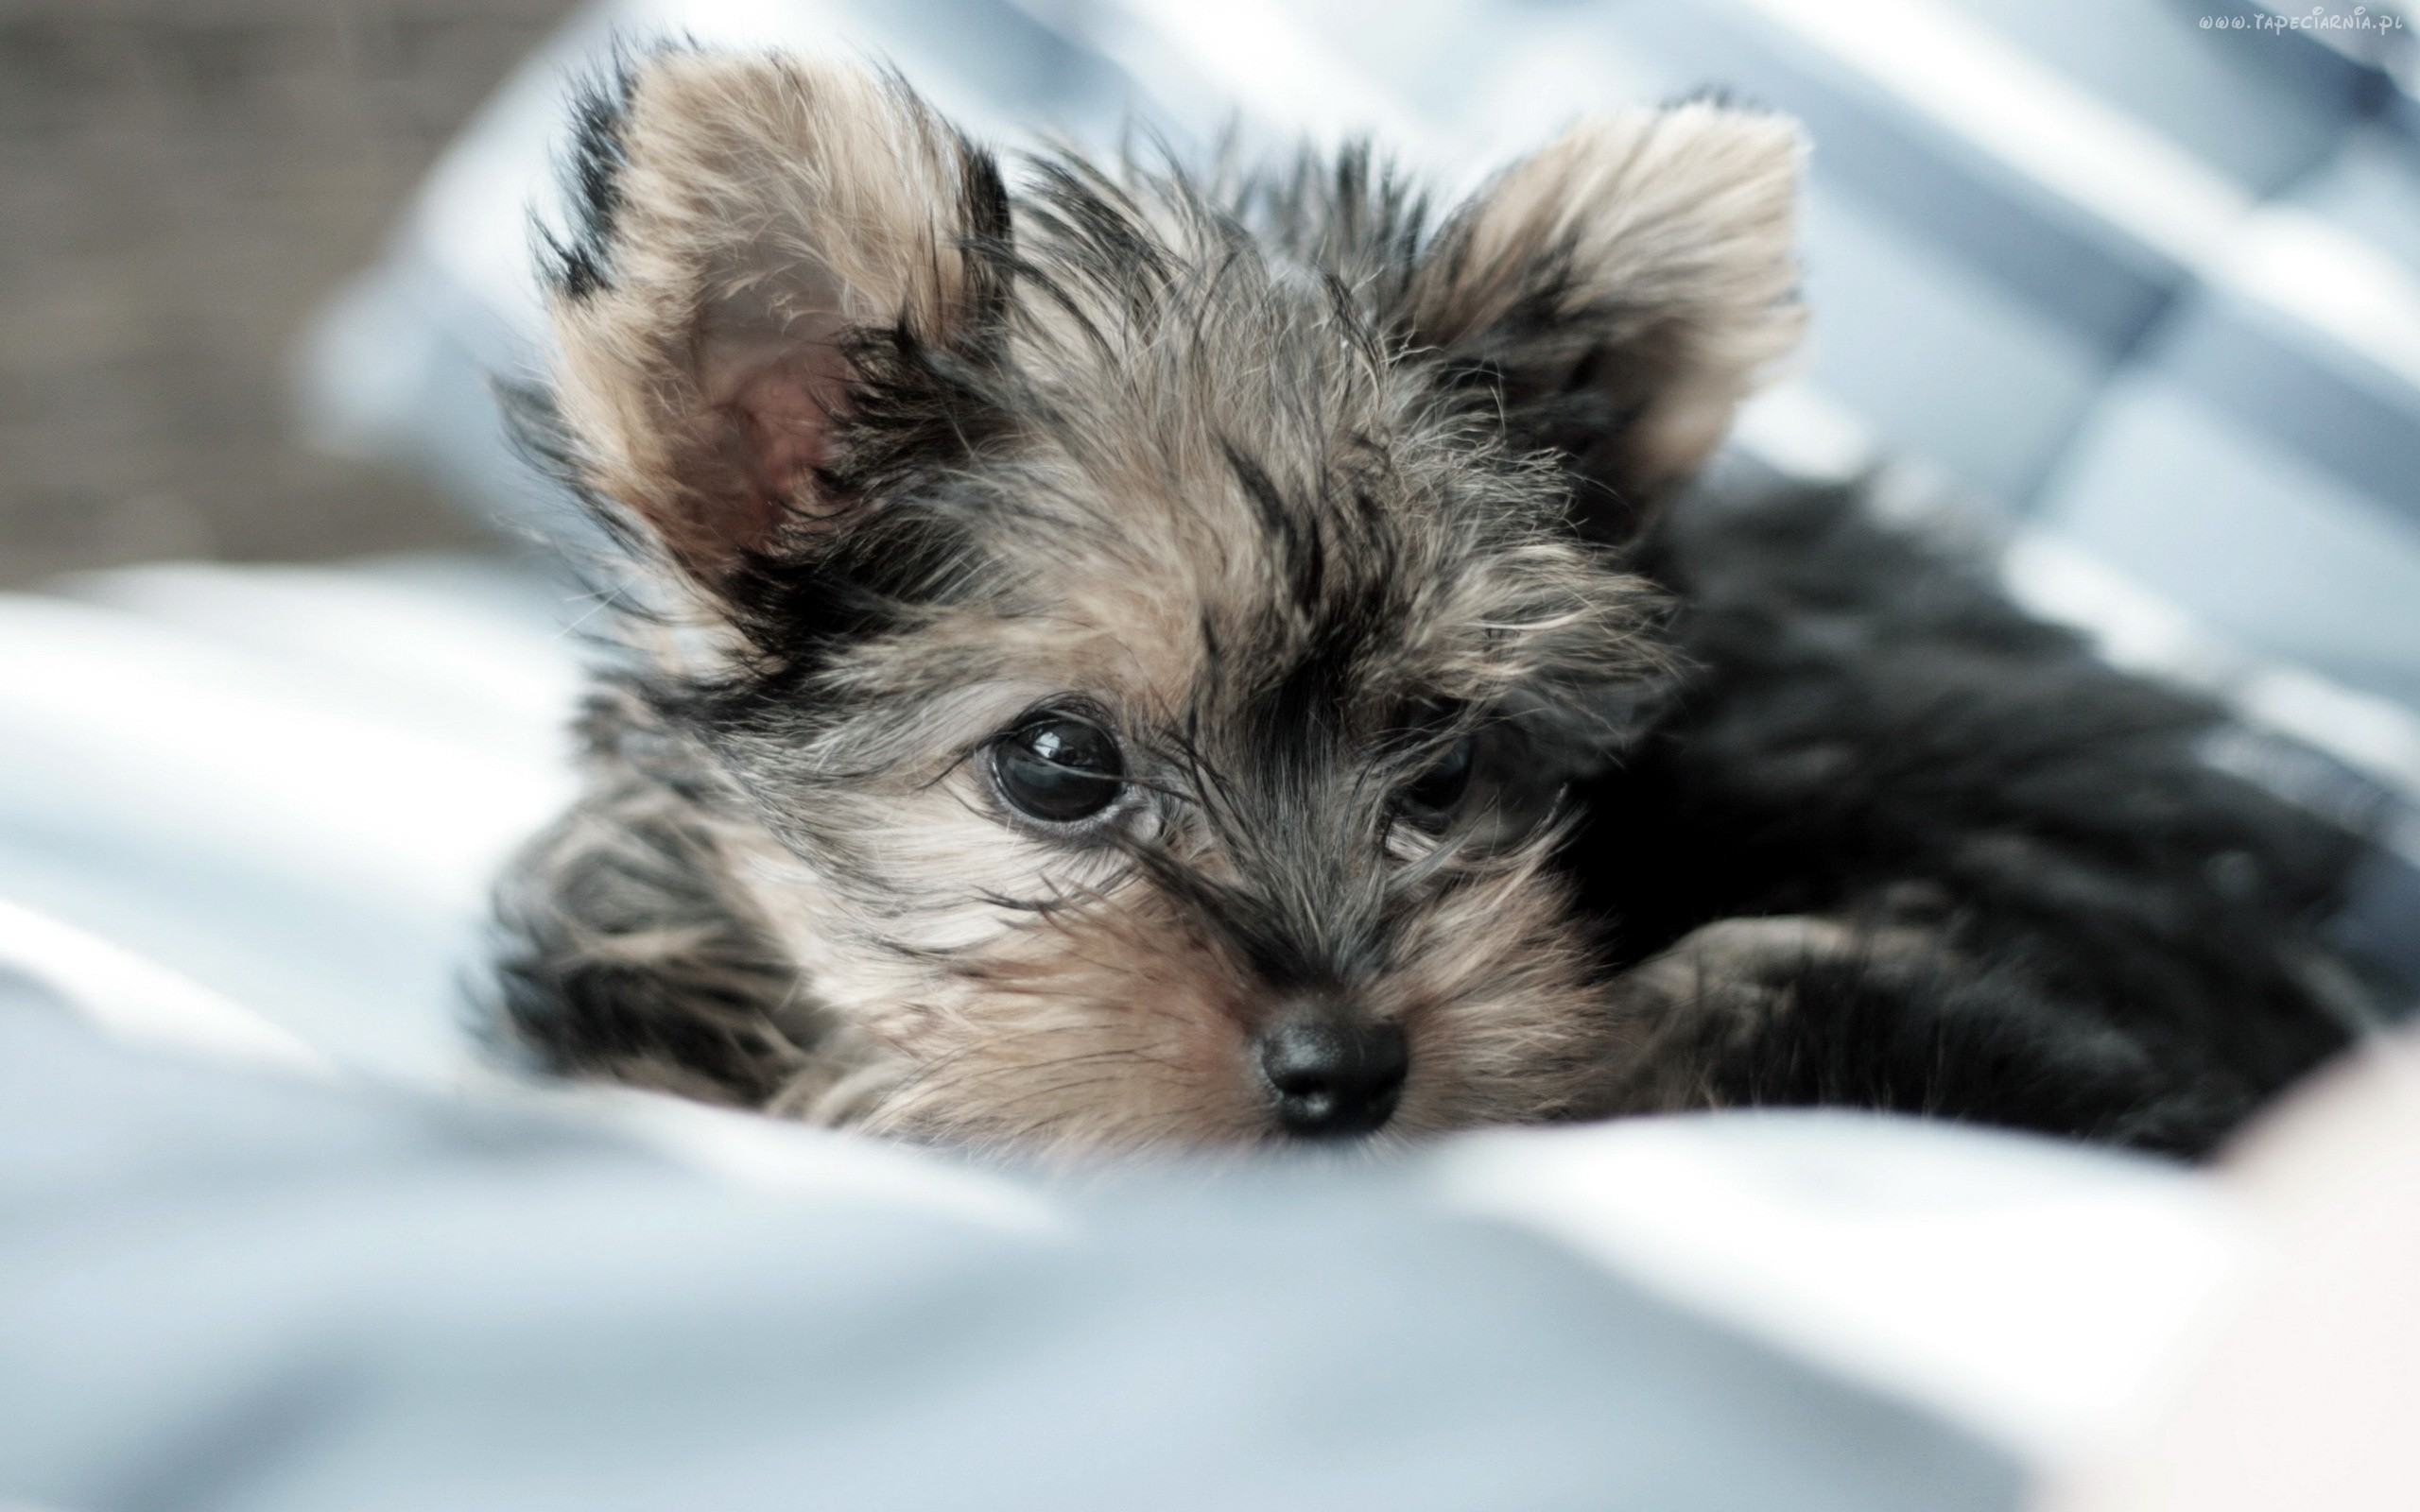 Yorkie Puppies - Wallpaper, High Definition, High Quality ...